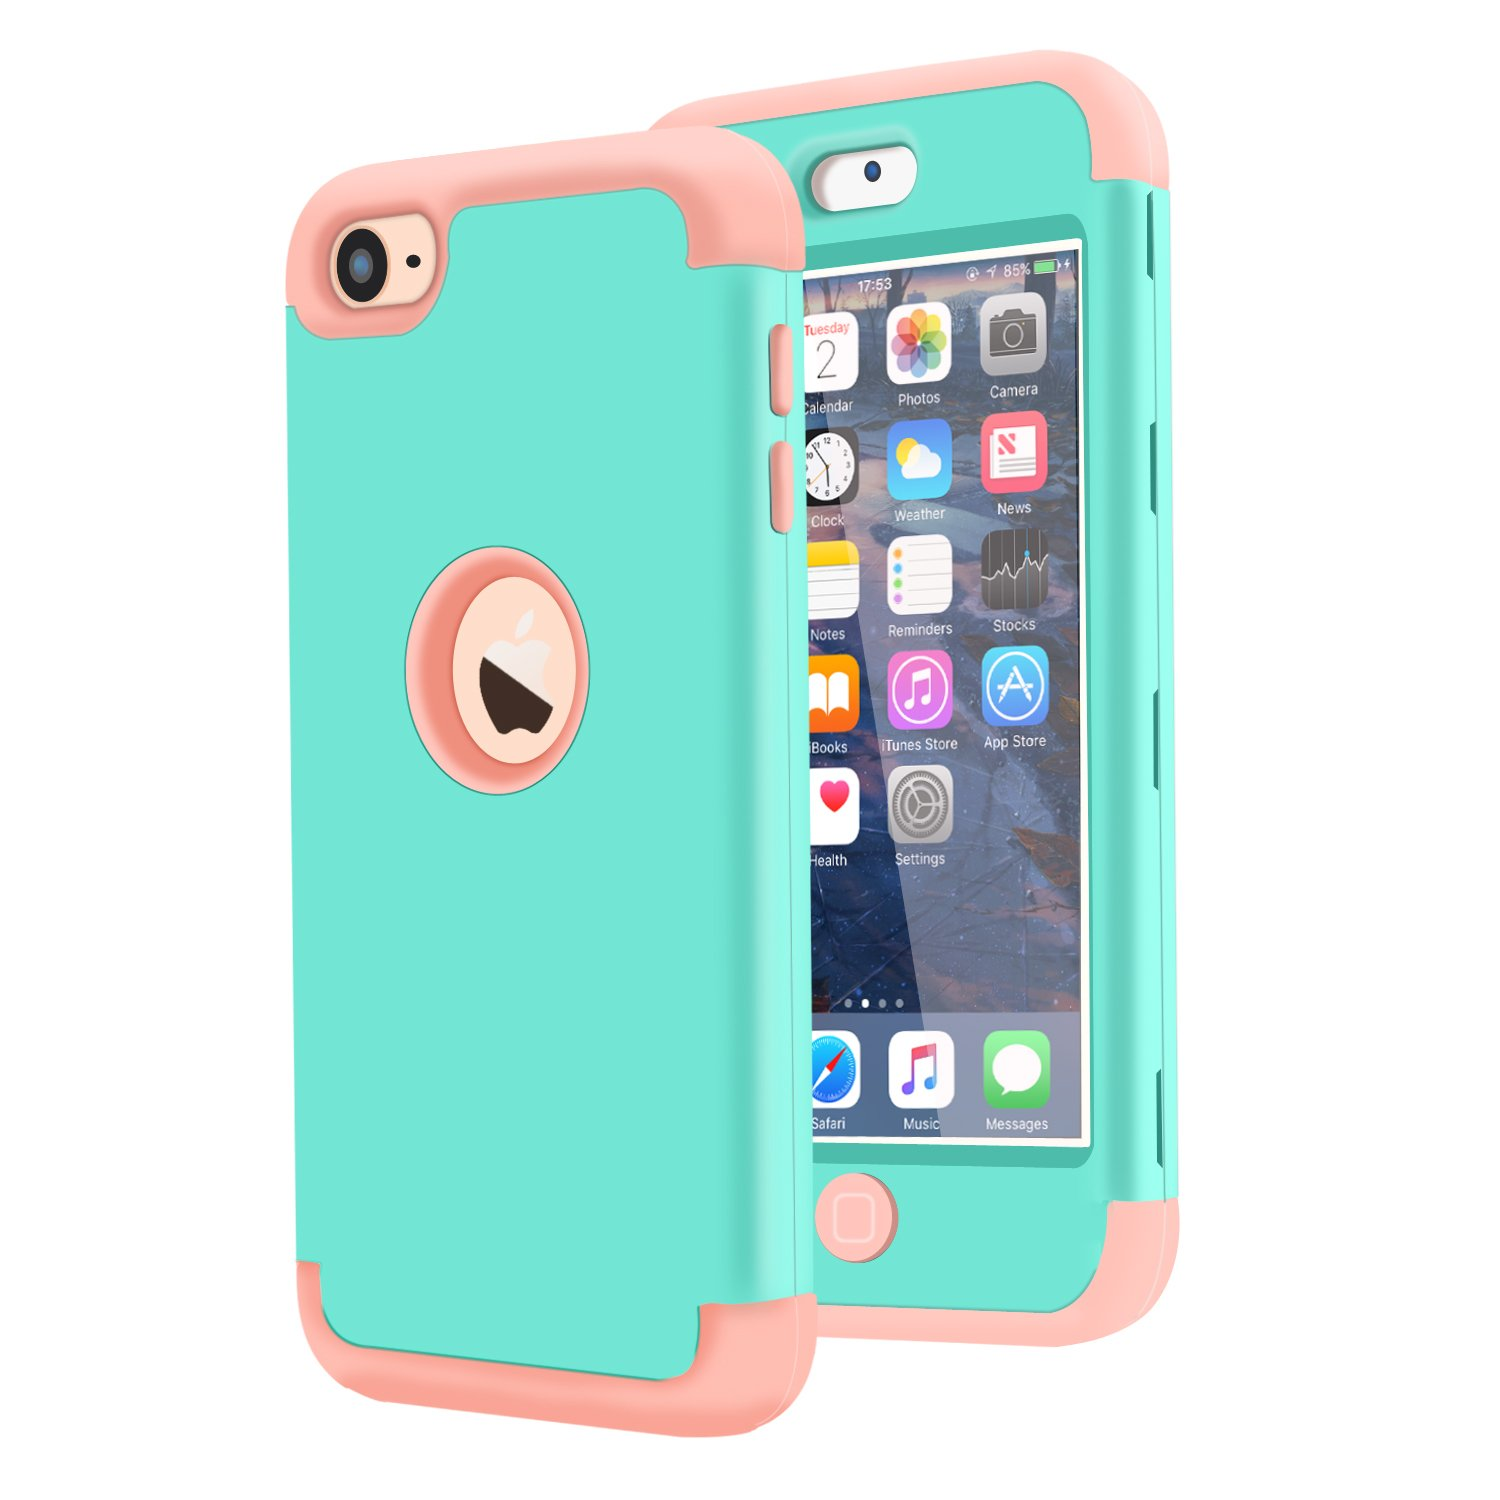 promo code a0ebb be2f2 Dailylux iPod Touch 7 Case,iPod Touch 5 Case,iPod Touch 6 Case,3in1 Hybrid  Impact Resistant Shockproof Hard Soft Silicone Protective Cover for Apple  ...